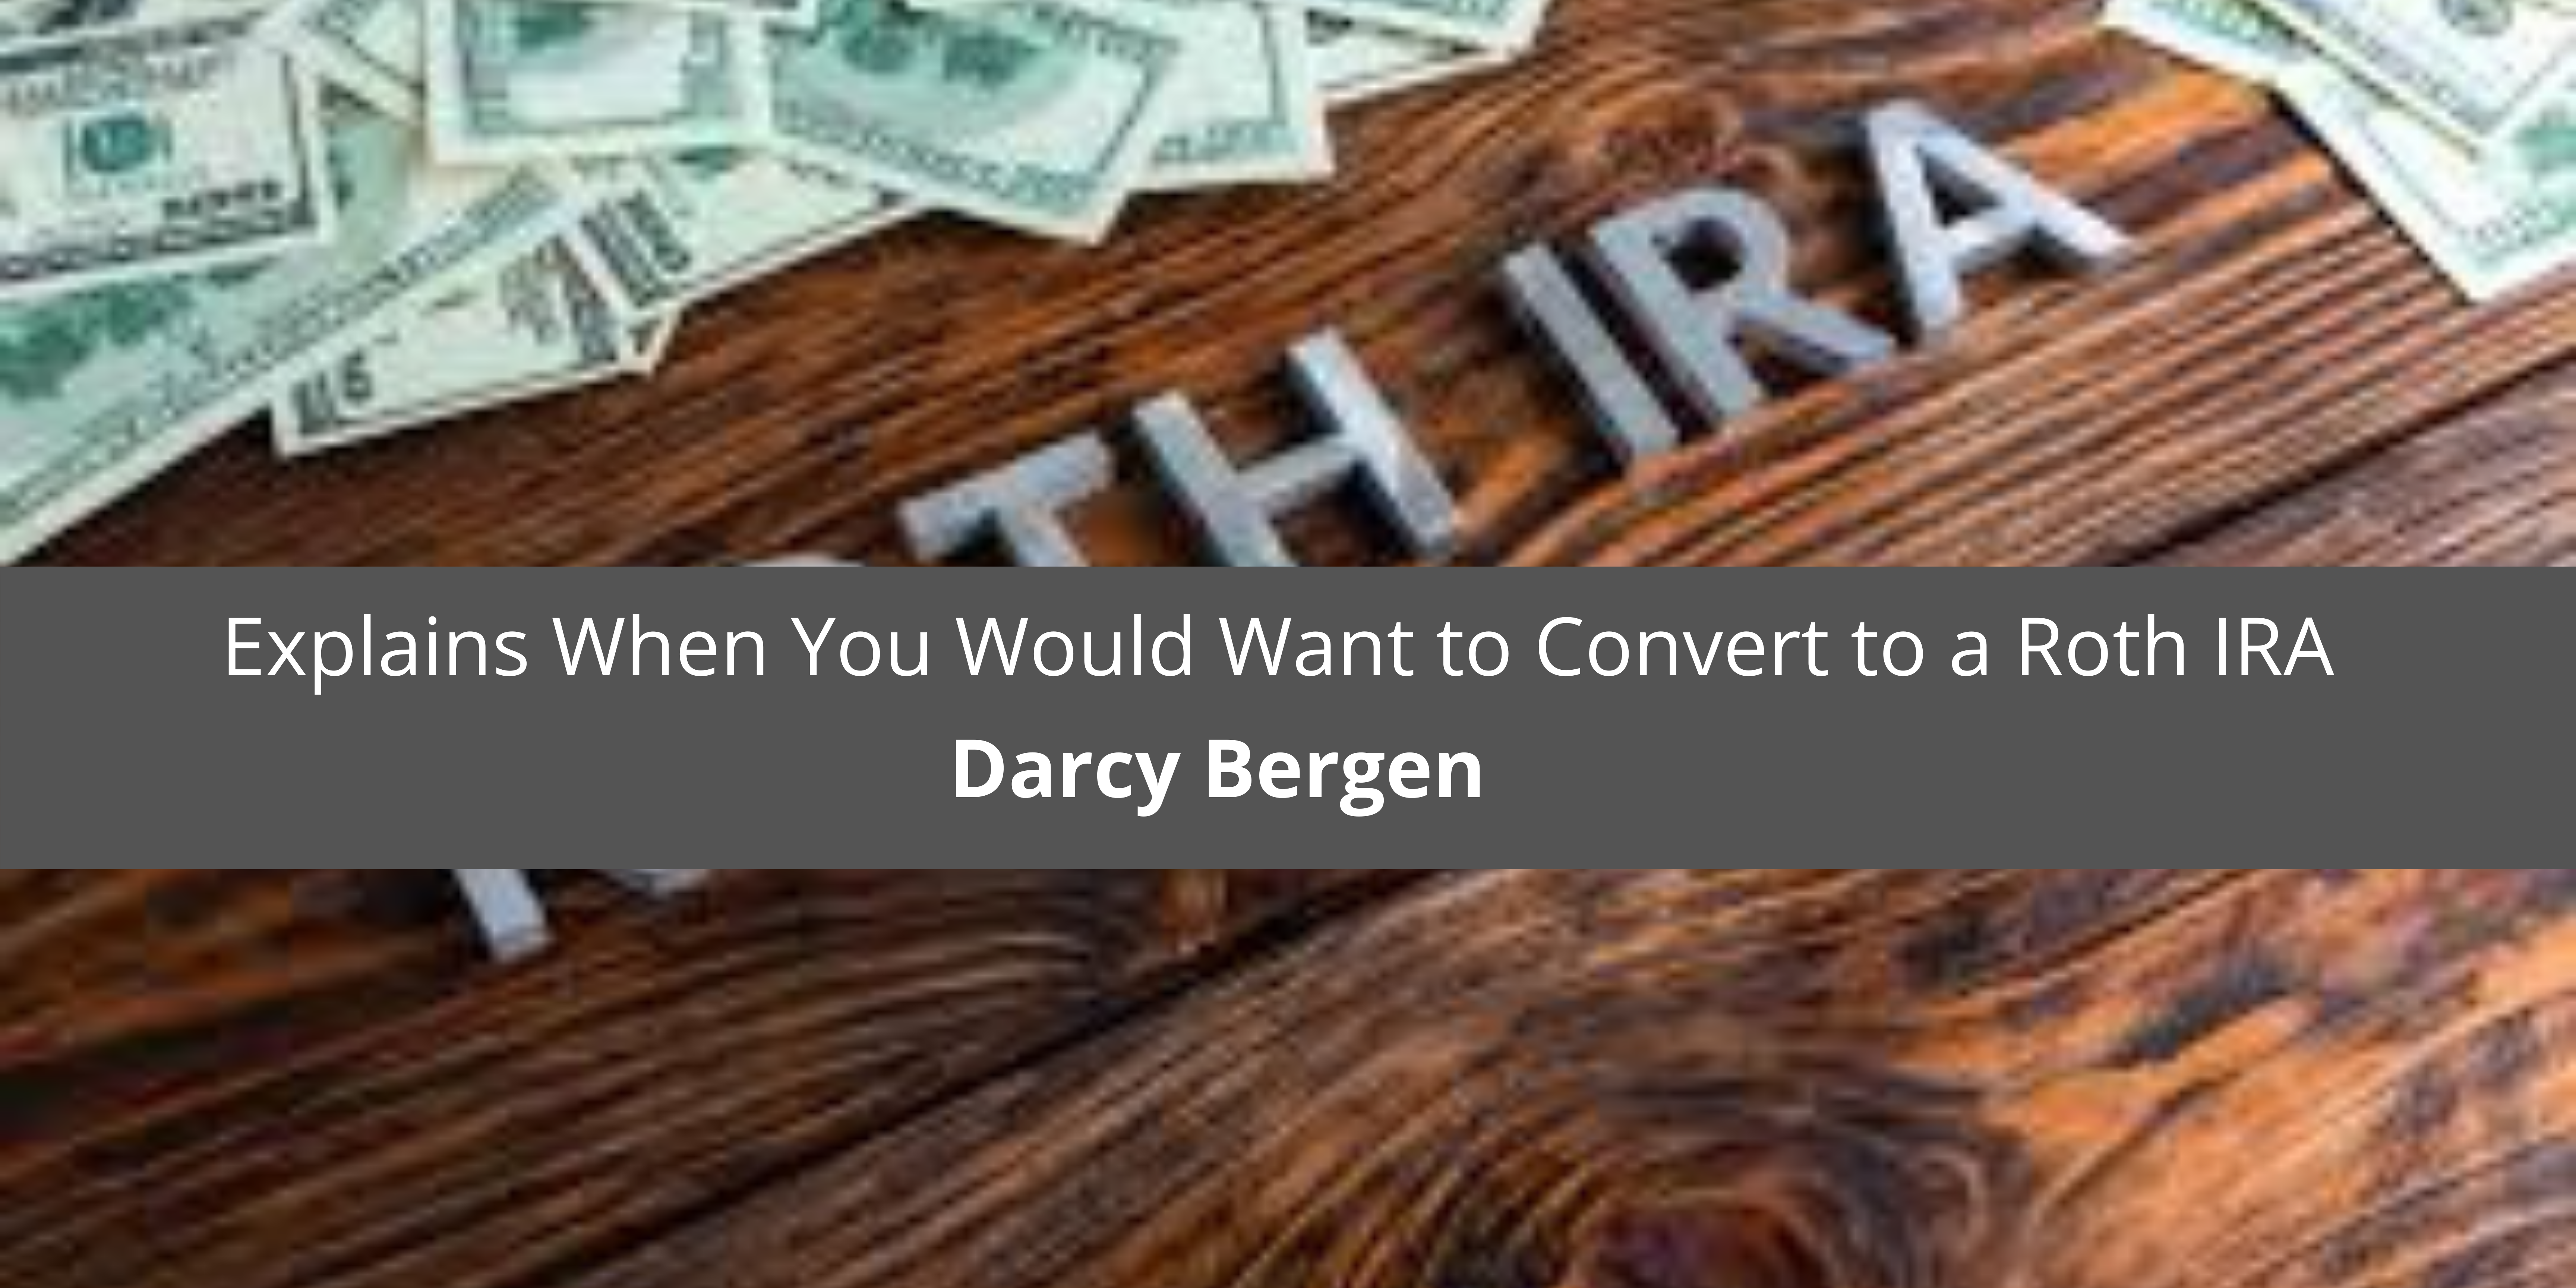 Darcy Bergen Explains When You Would Want to Convert to a Roth IRA